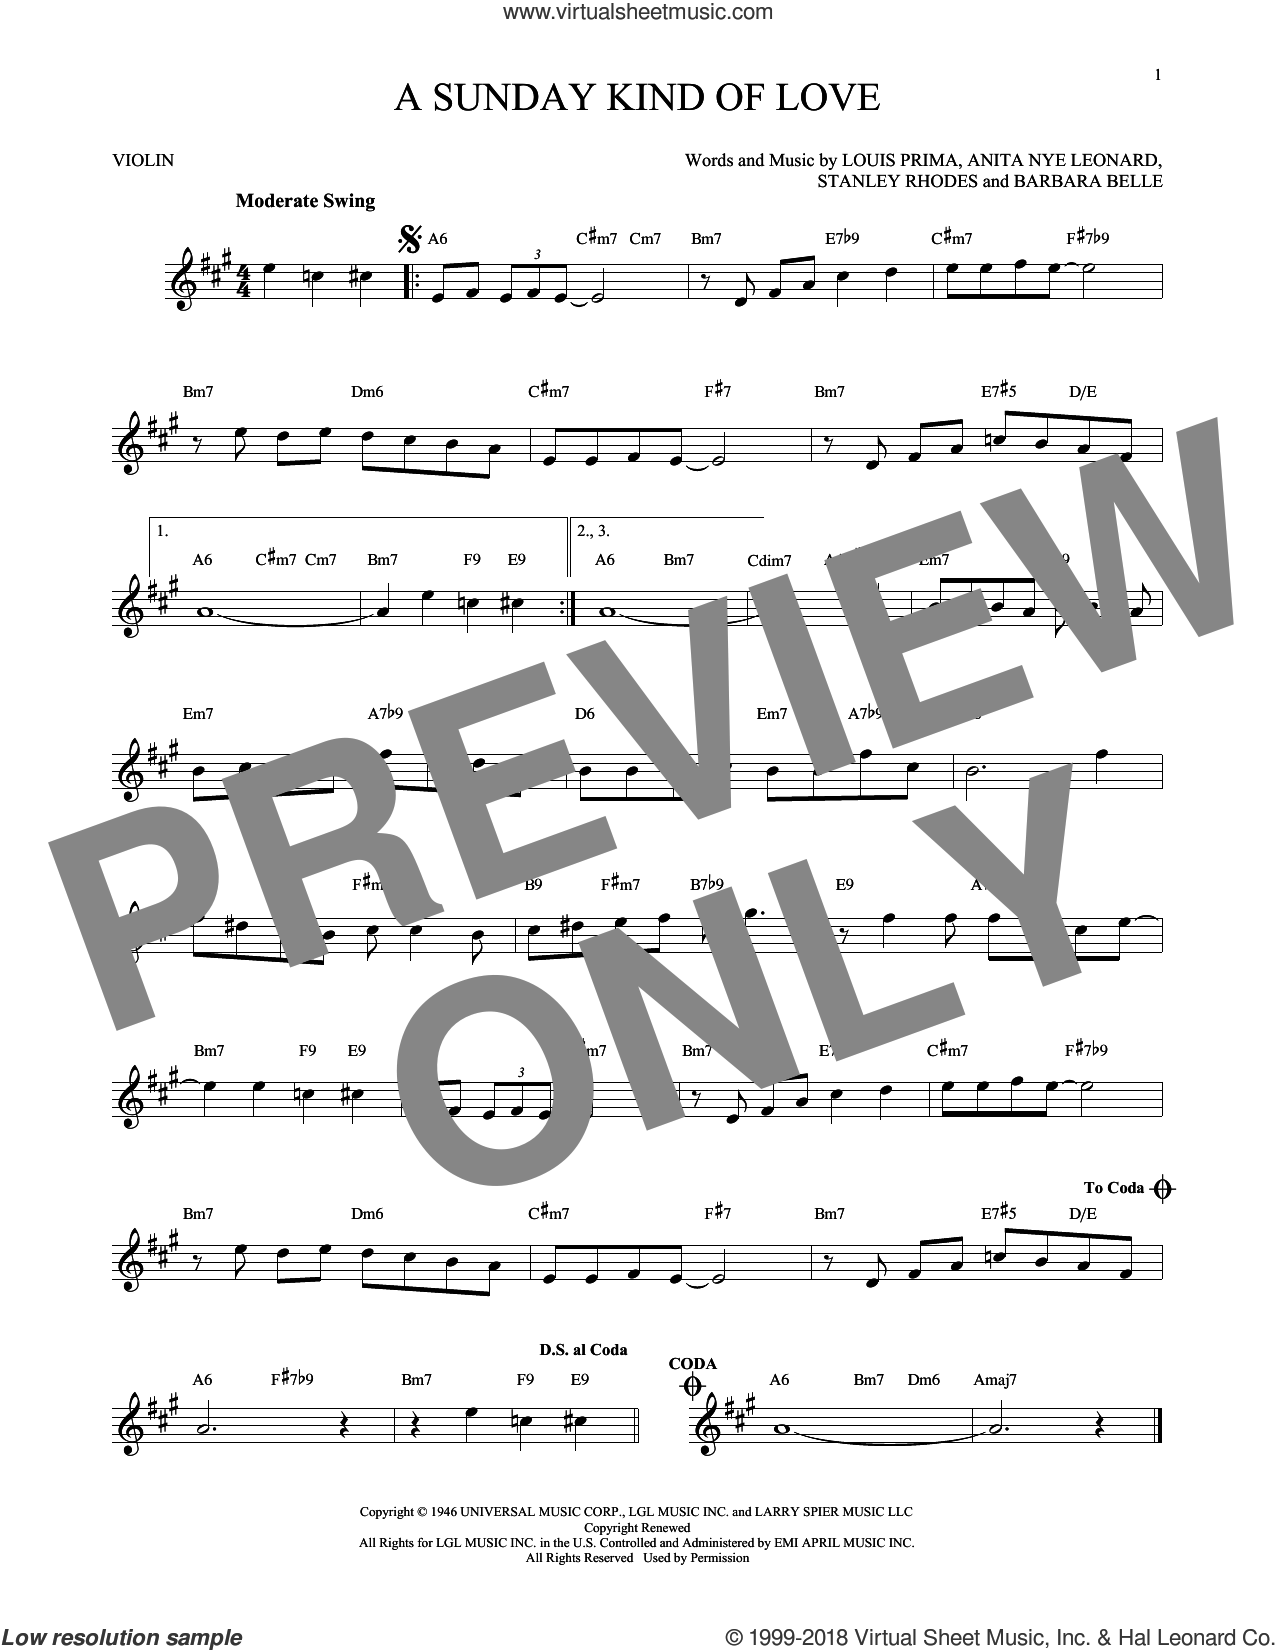 A Sunday Kind Of Love sheet music for violin solo by Etta James, Reba McEntire, Anita Nye Leonard, Barbara Belle, Louis Prima and Stanley Rhodes, intermediate skill level